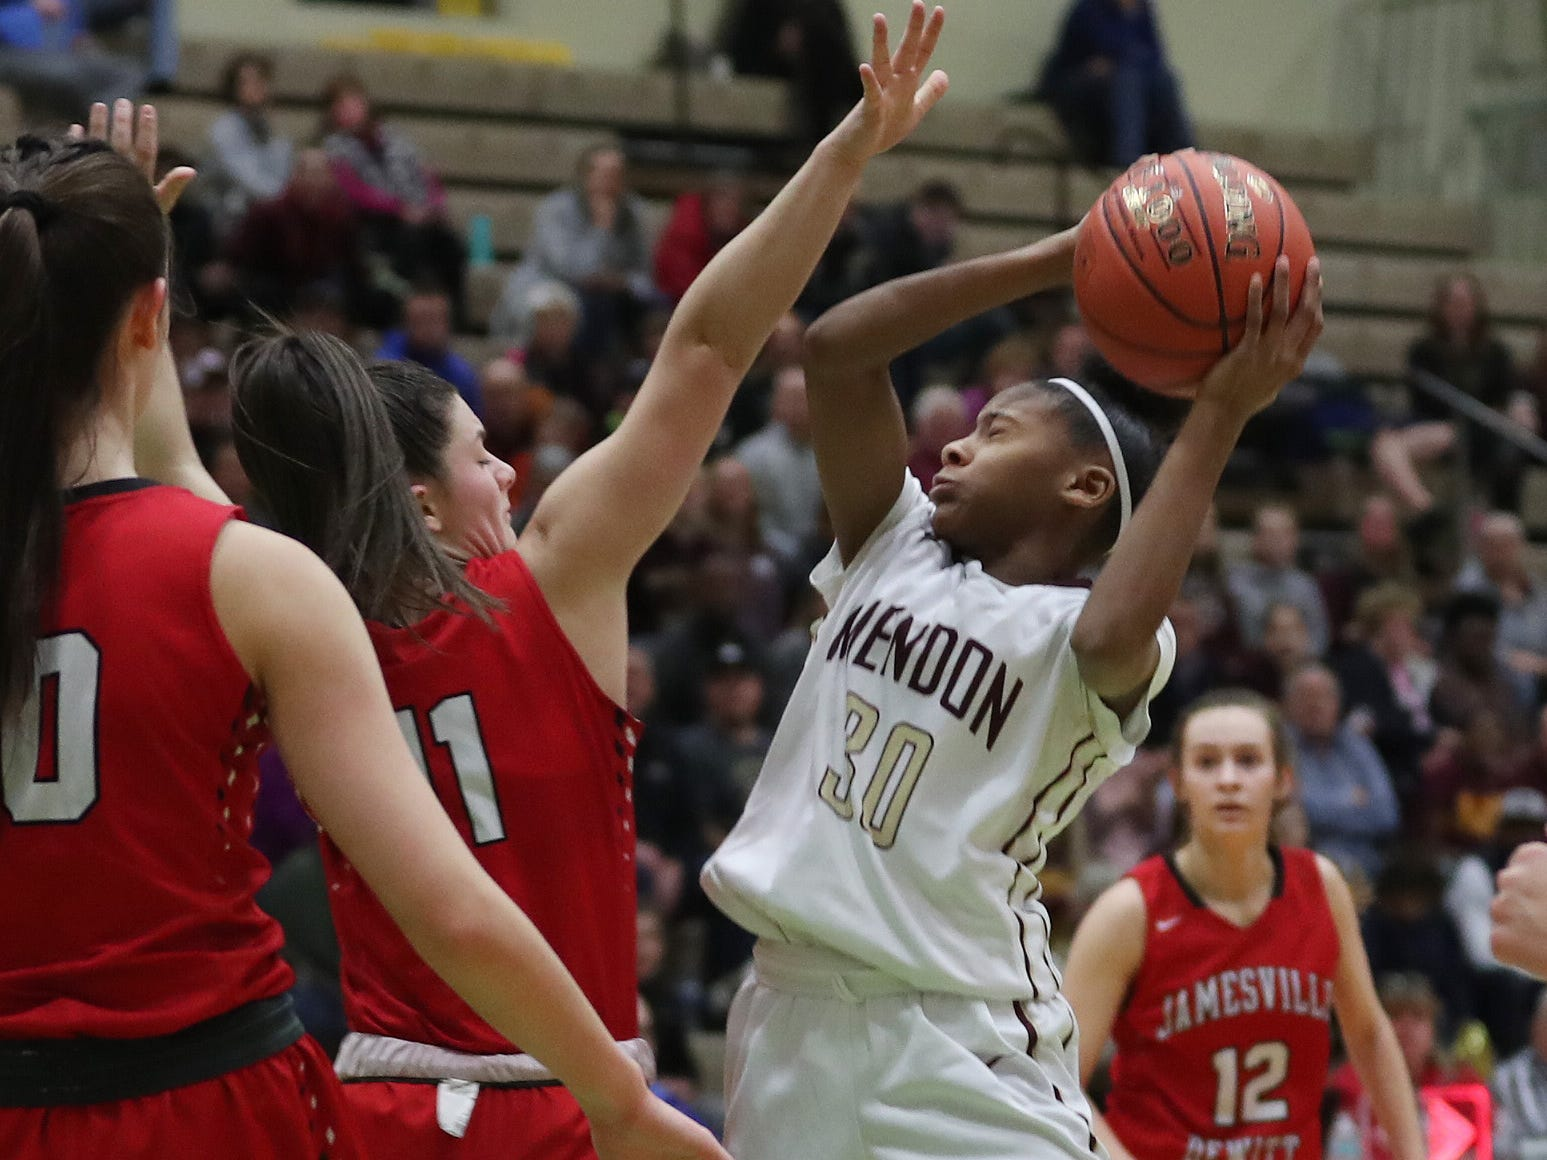 Pittsford Mendon's Anaya Coleman (30) goes up for a shot against Jamesville- DeWitt during the girls Class A state semifinal at Hudson Valley Community College in Troy March 16, 2019.